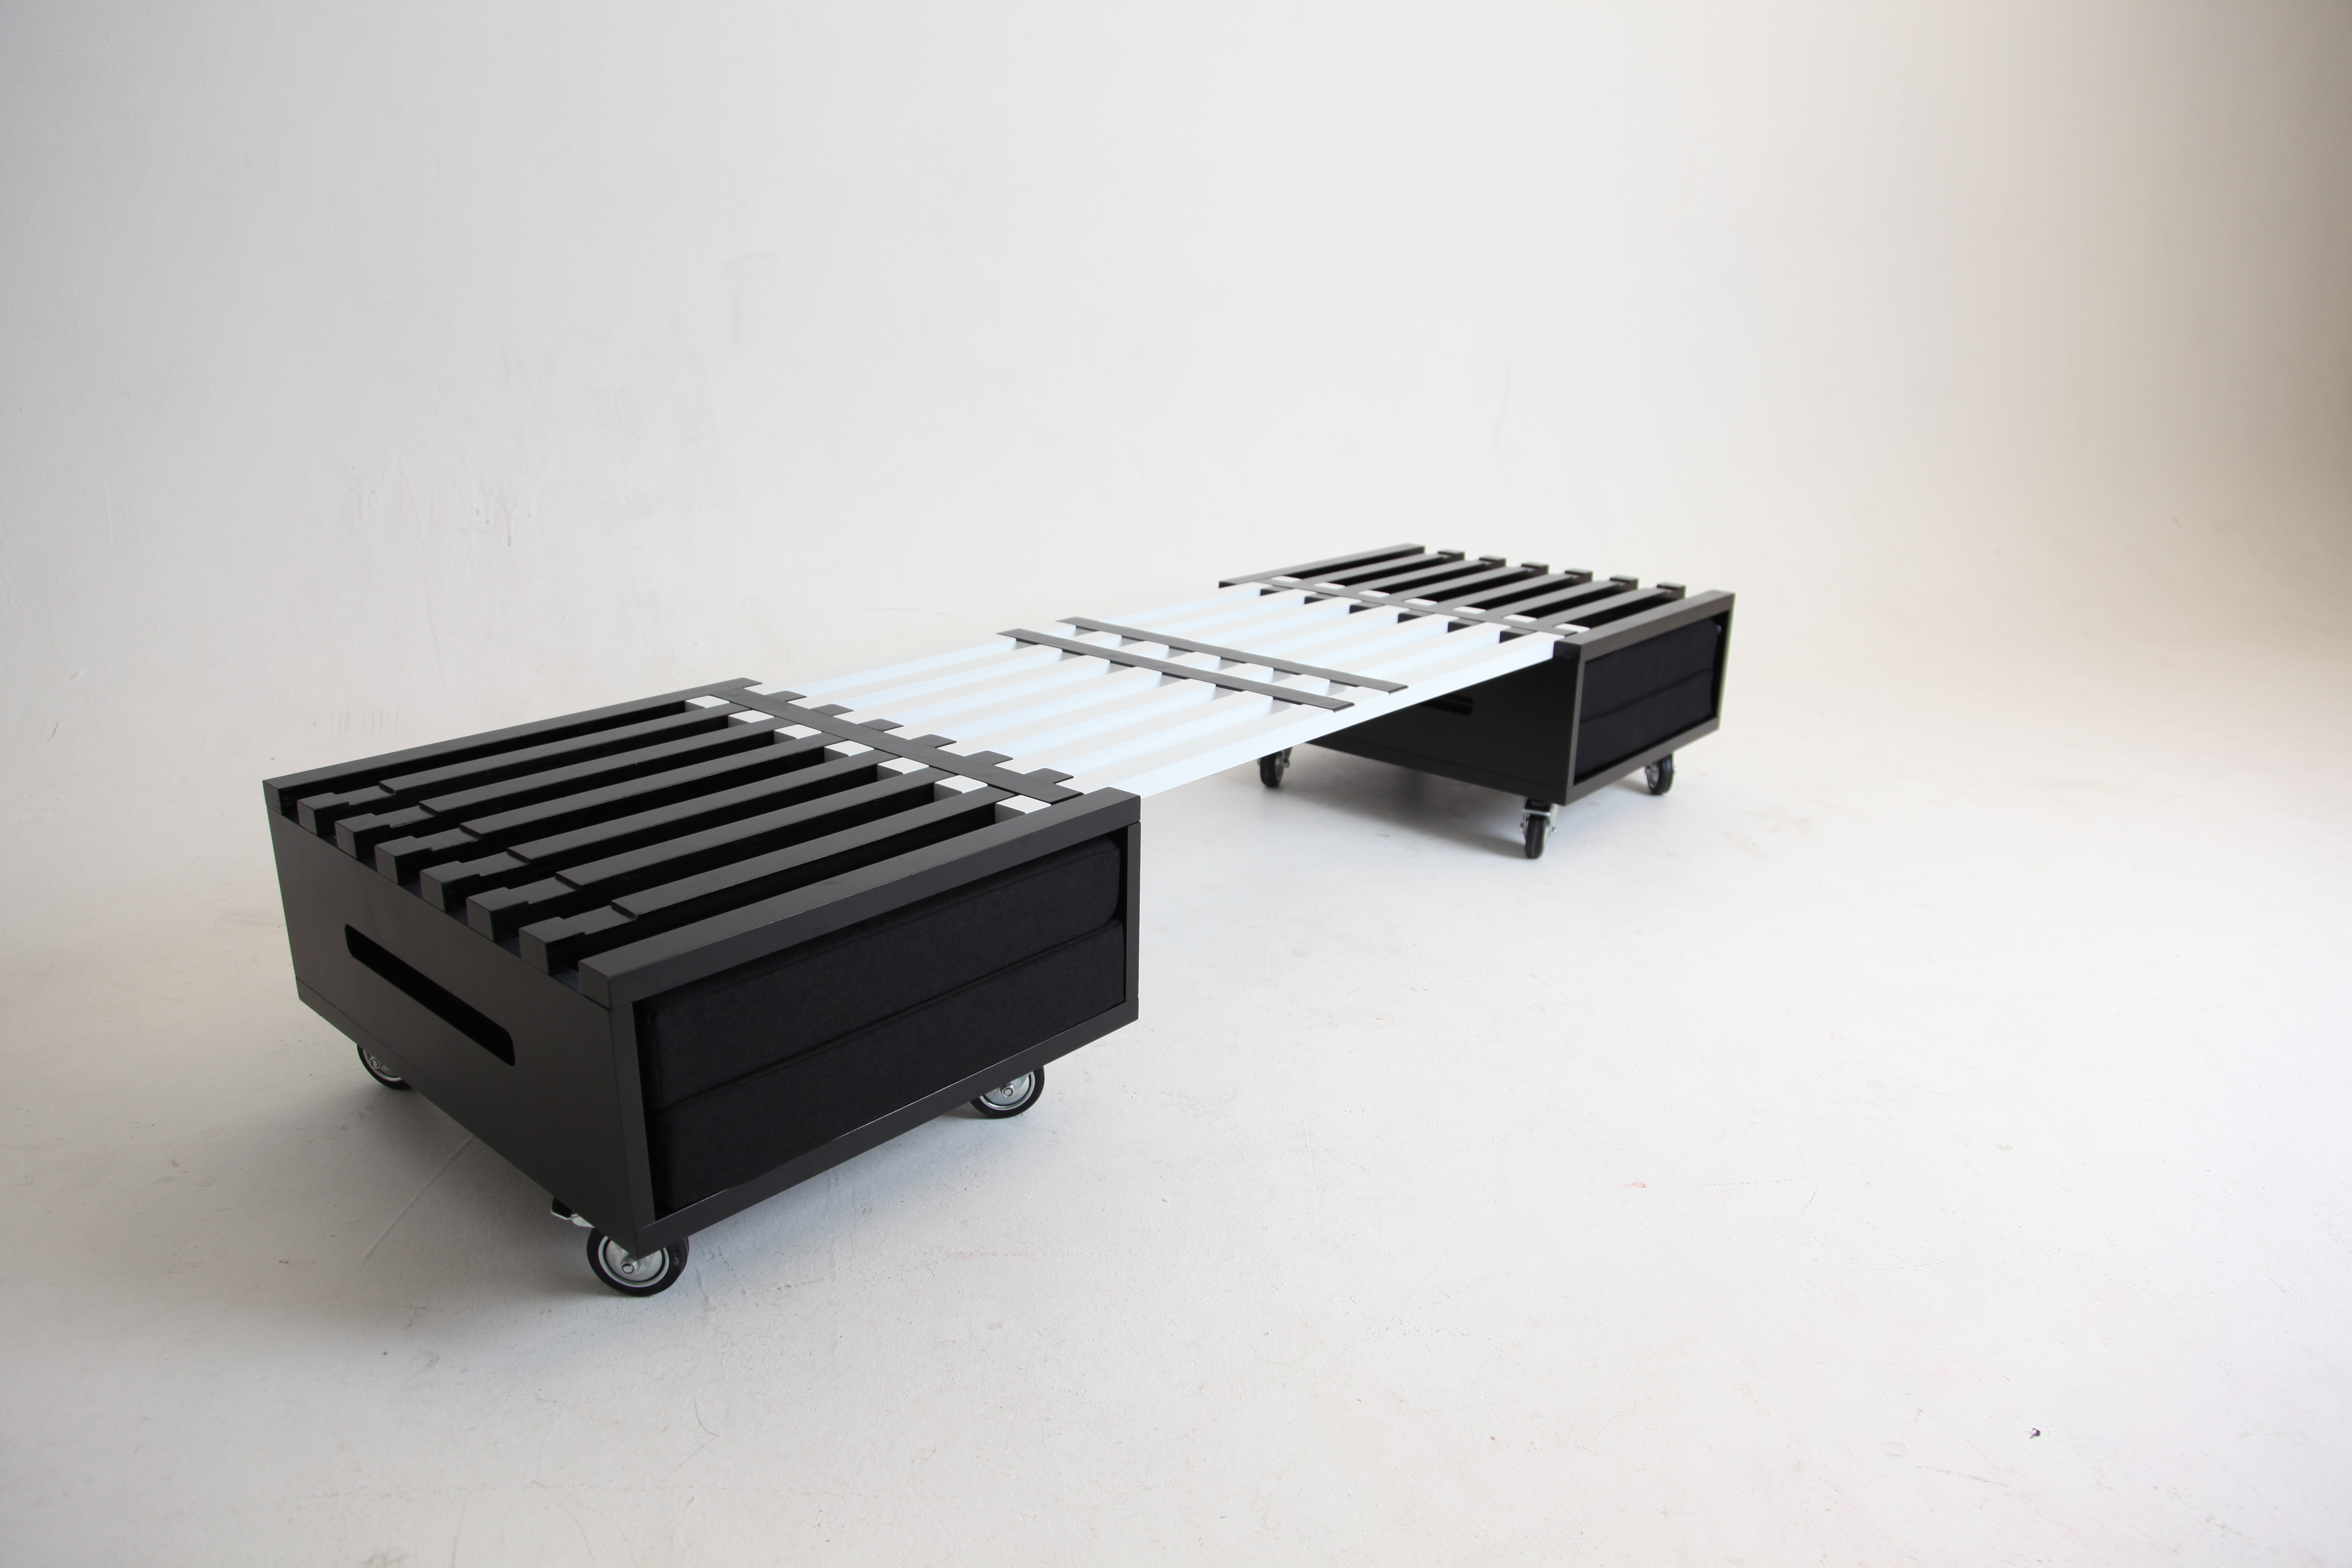 Somnys Transformer Furniture By Fabien Rolland At